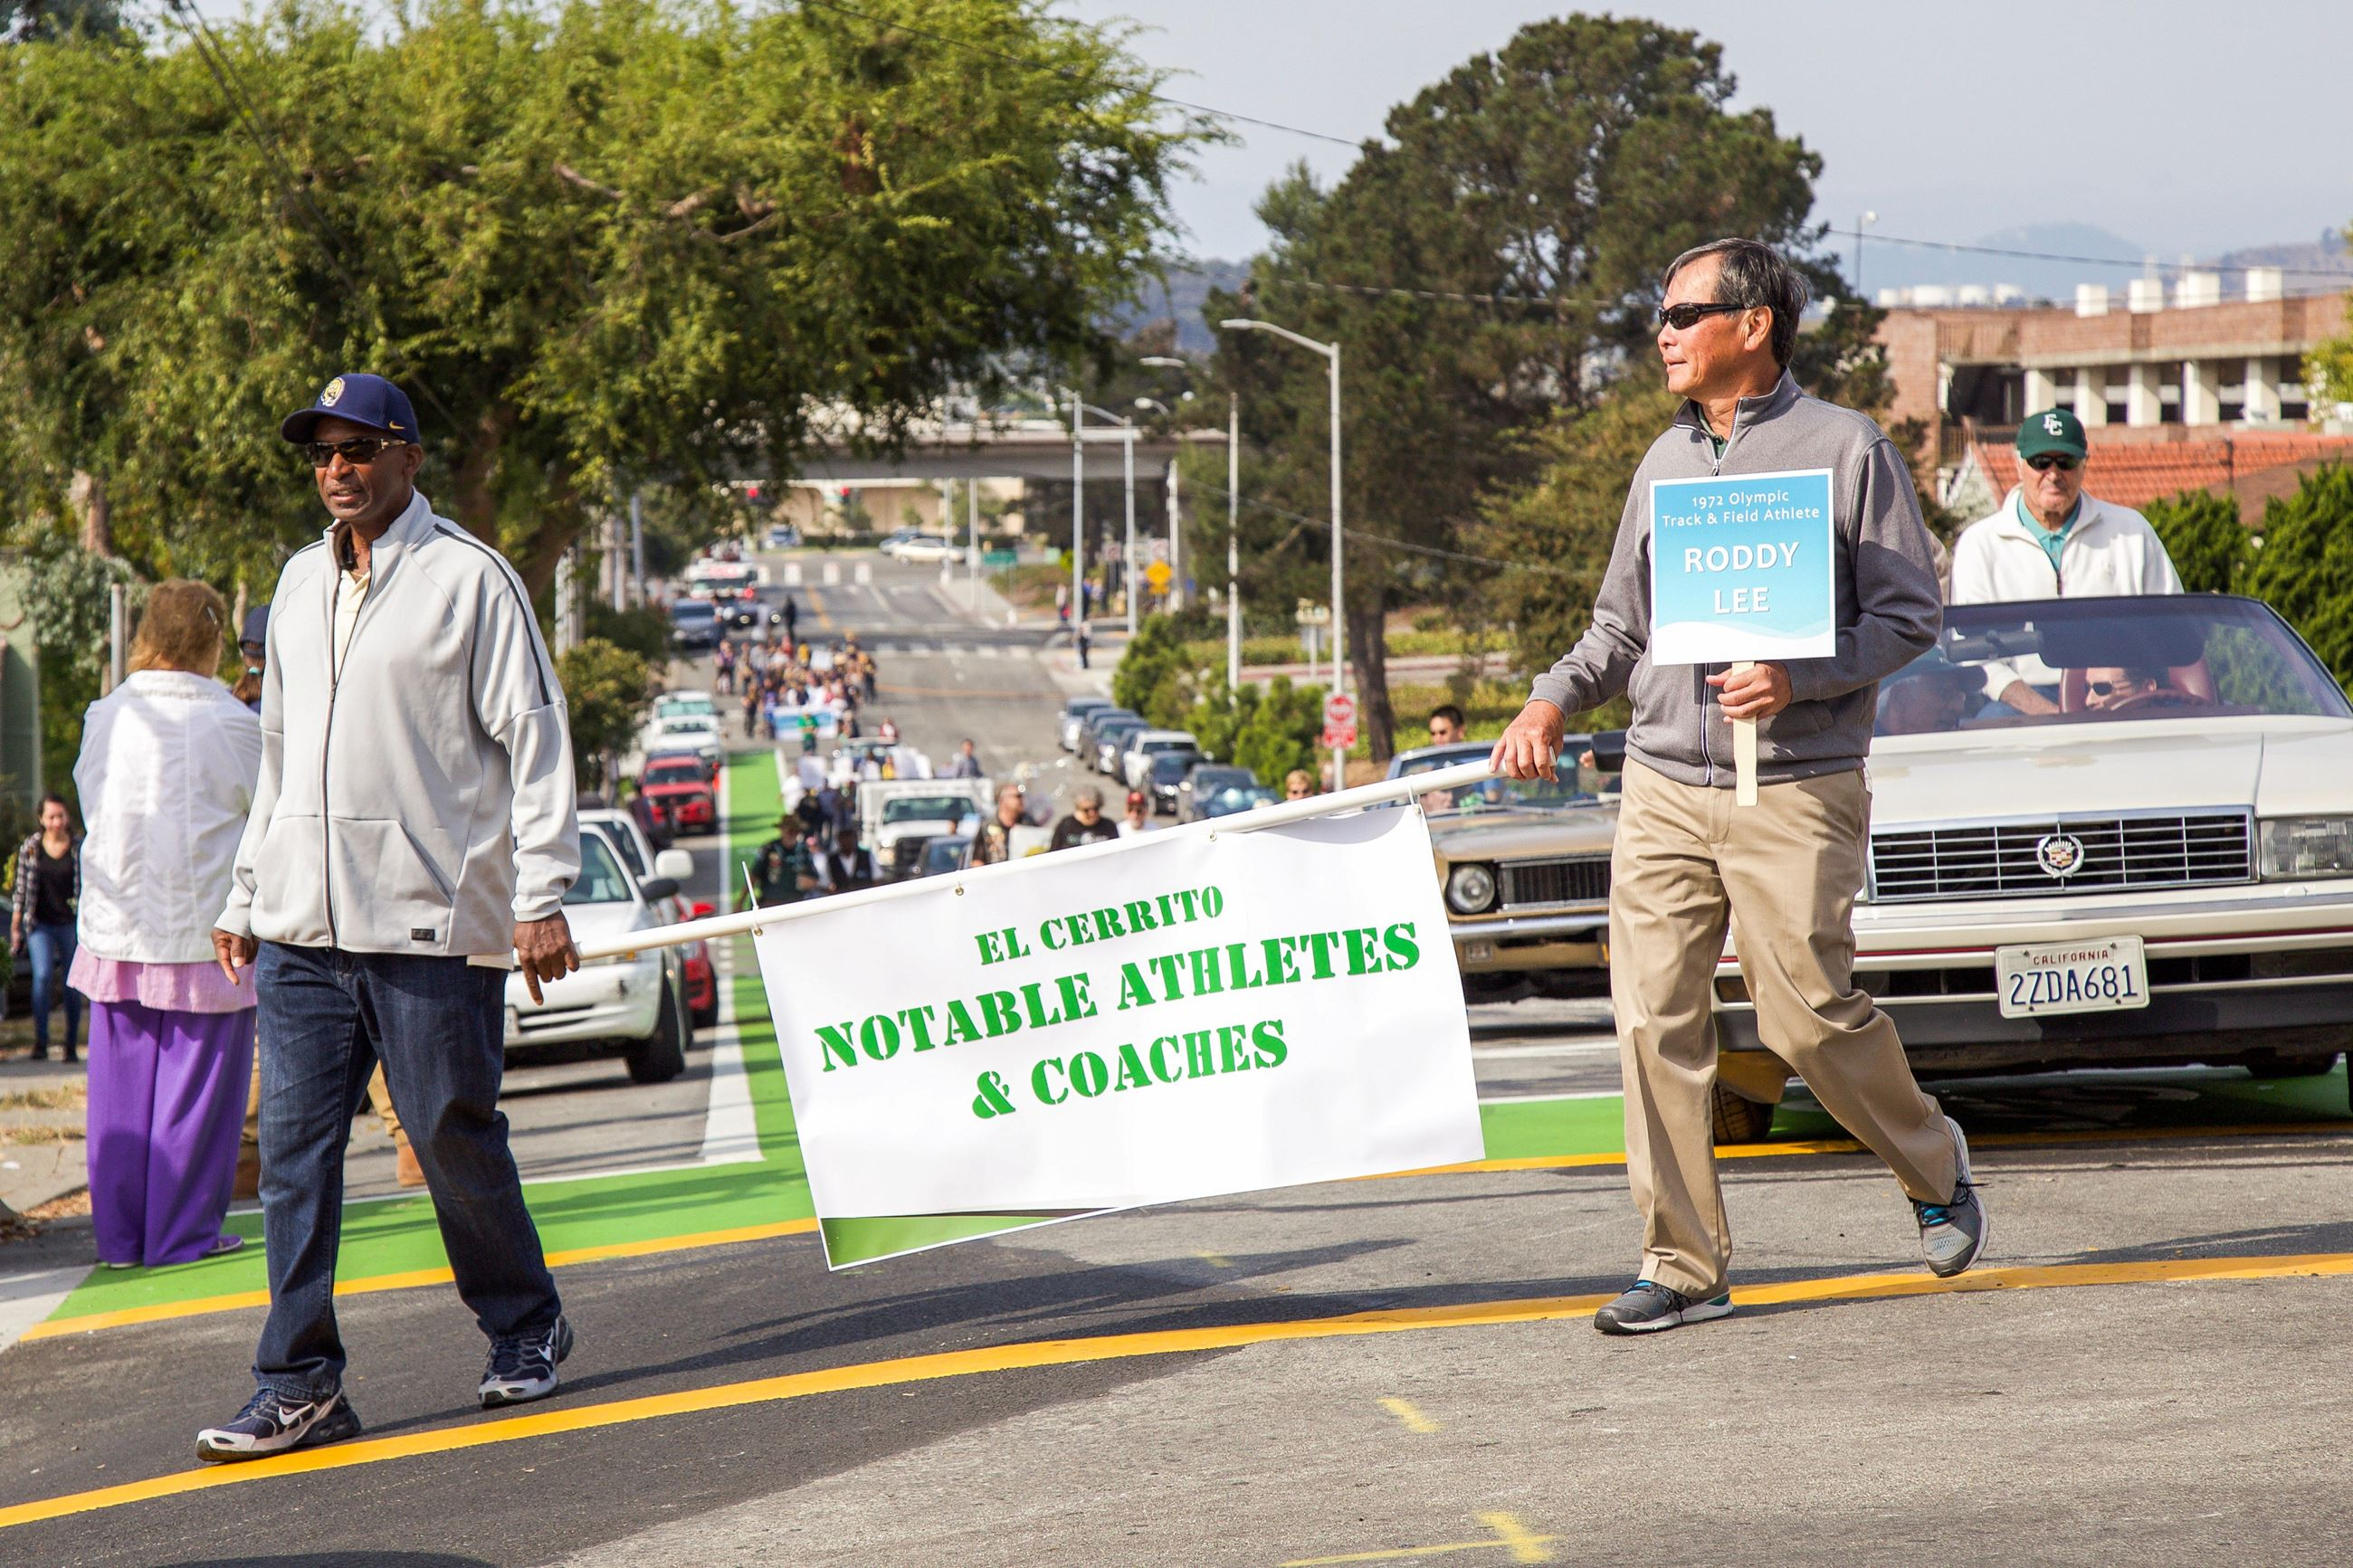 238 Notabe athletes in the Parade - Photo by Marin Stuart